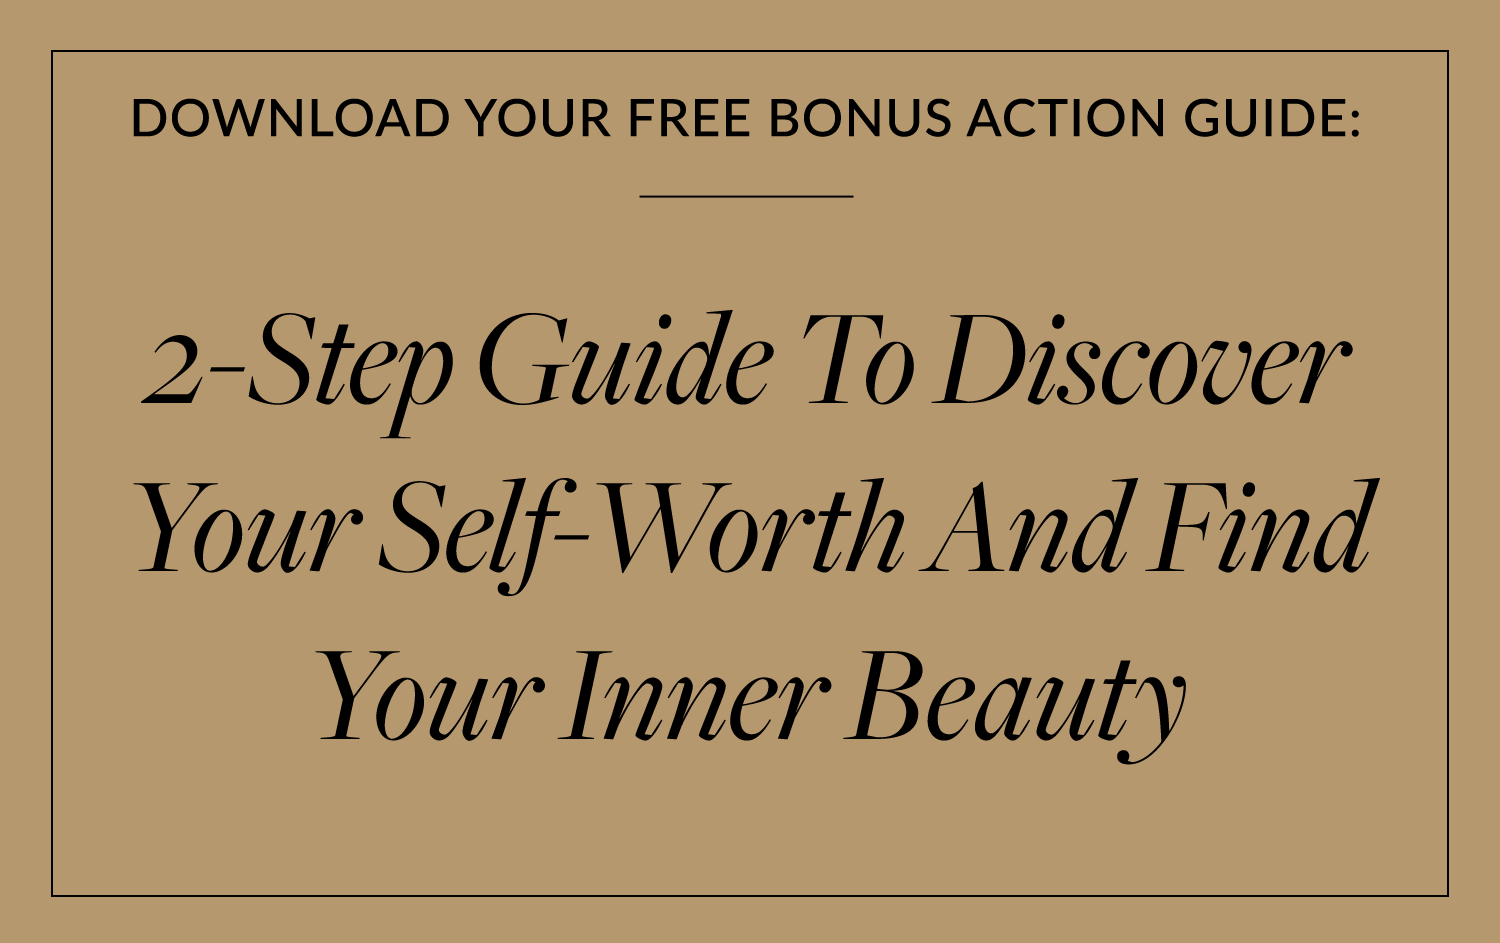 2-Step Guide To Discover Your Self-Worth And Find Your Inner Beauty